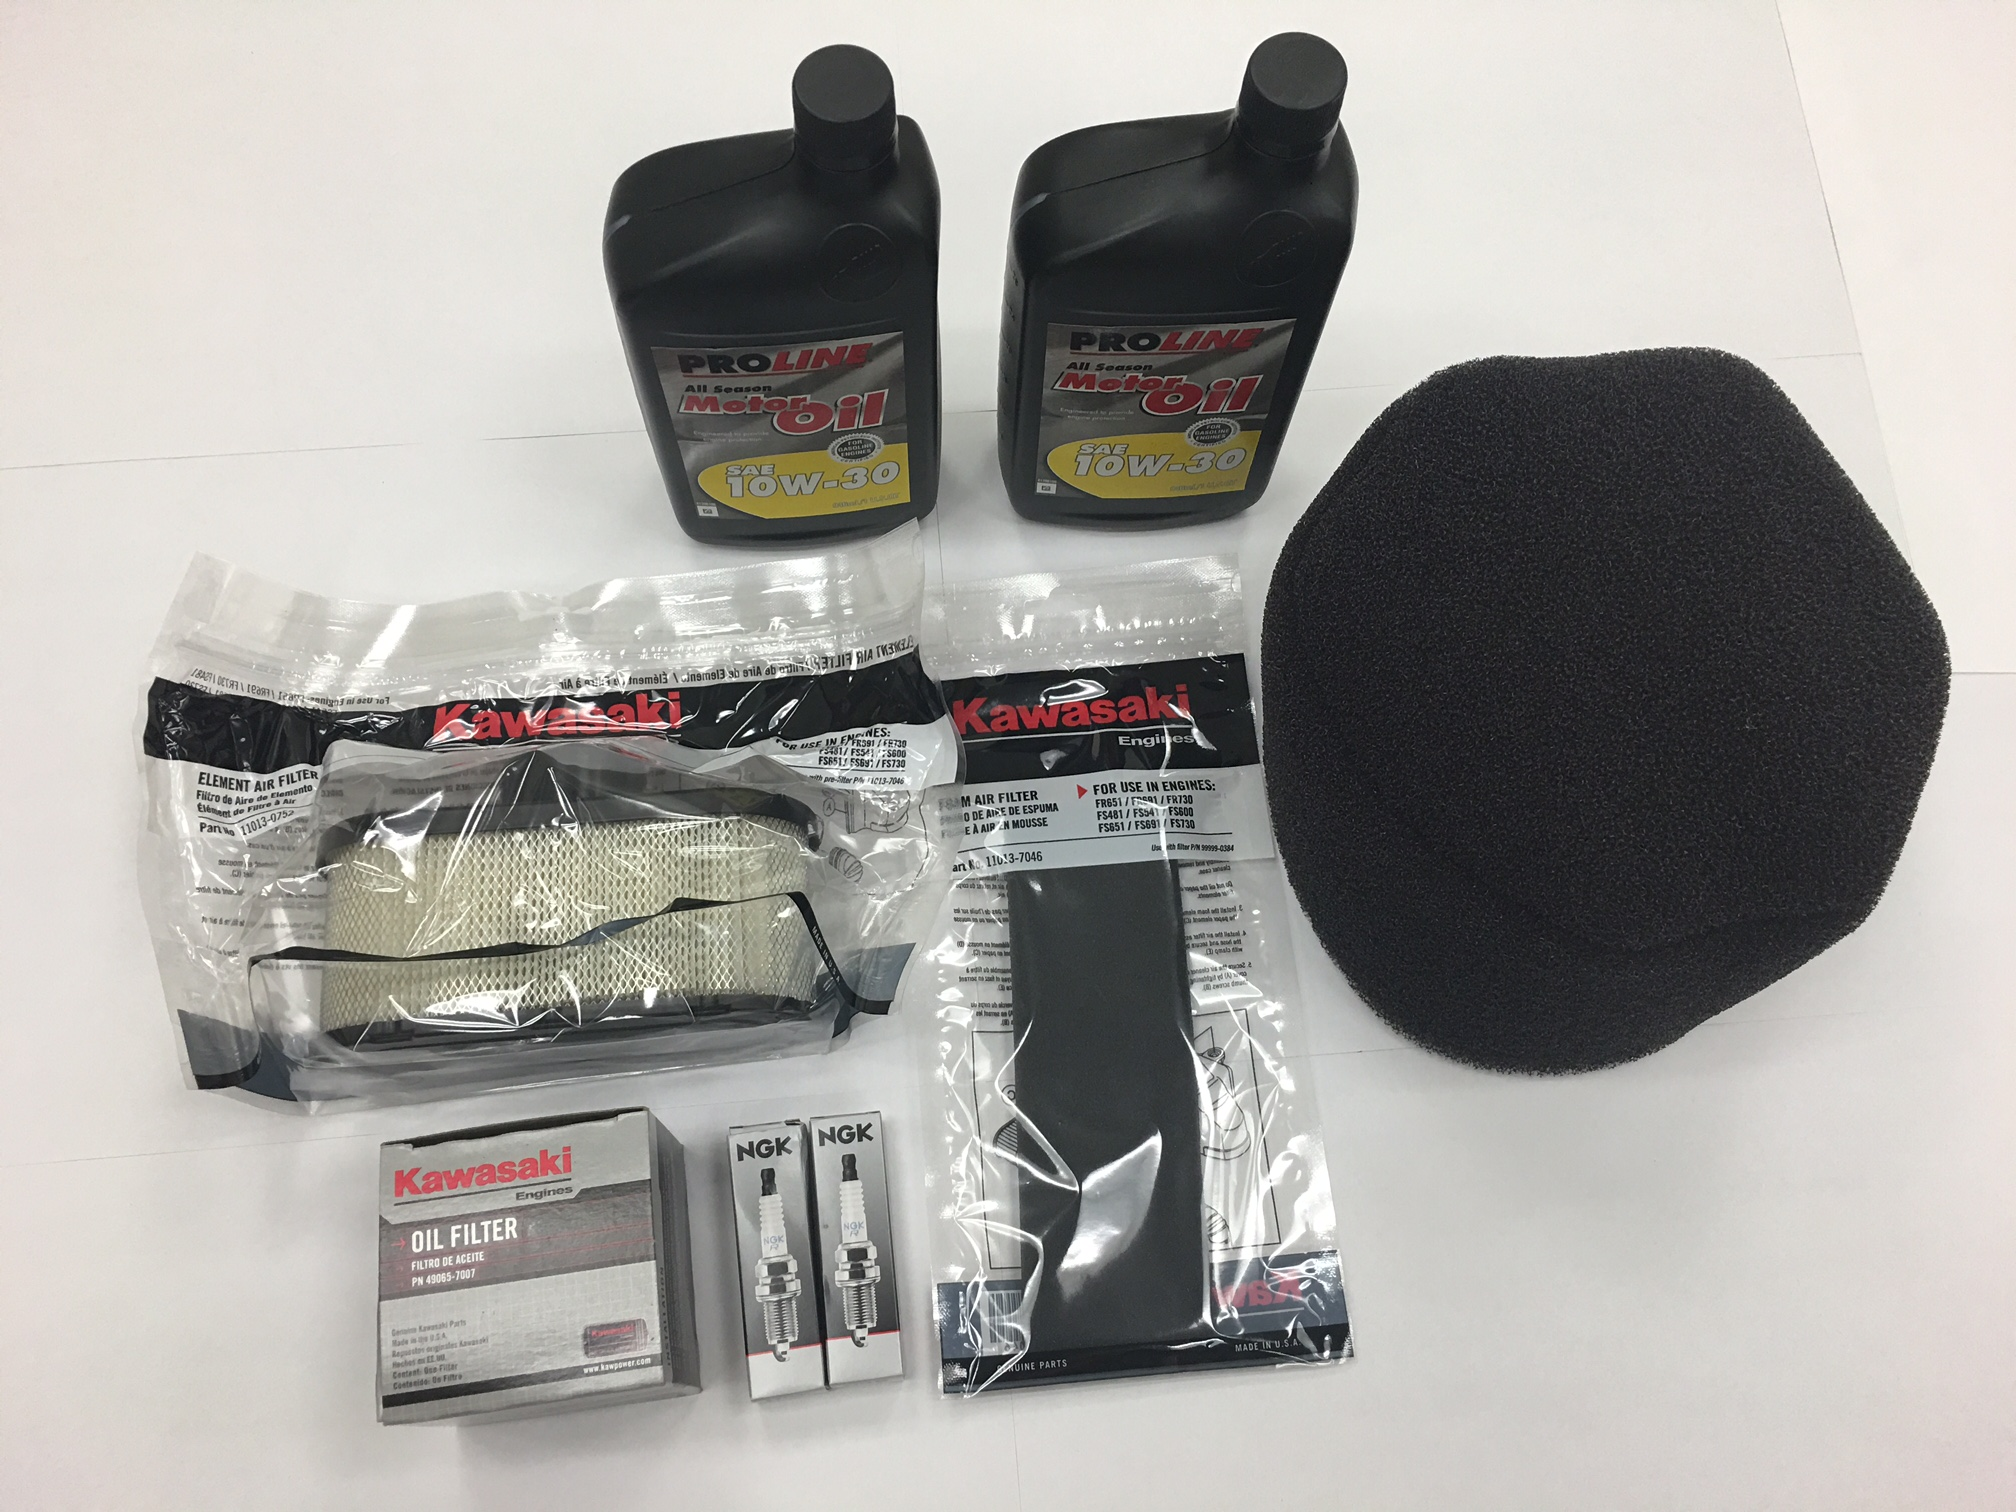 Complete the Kawasaki FS481v PM Kit